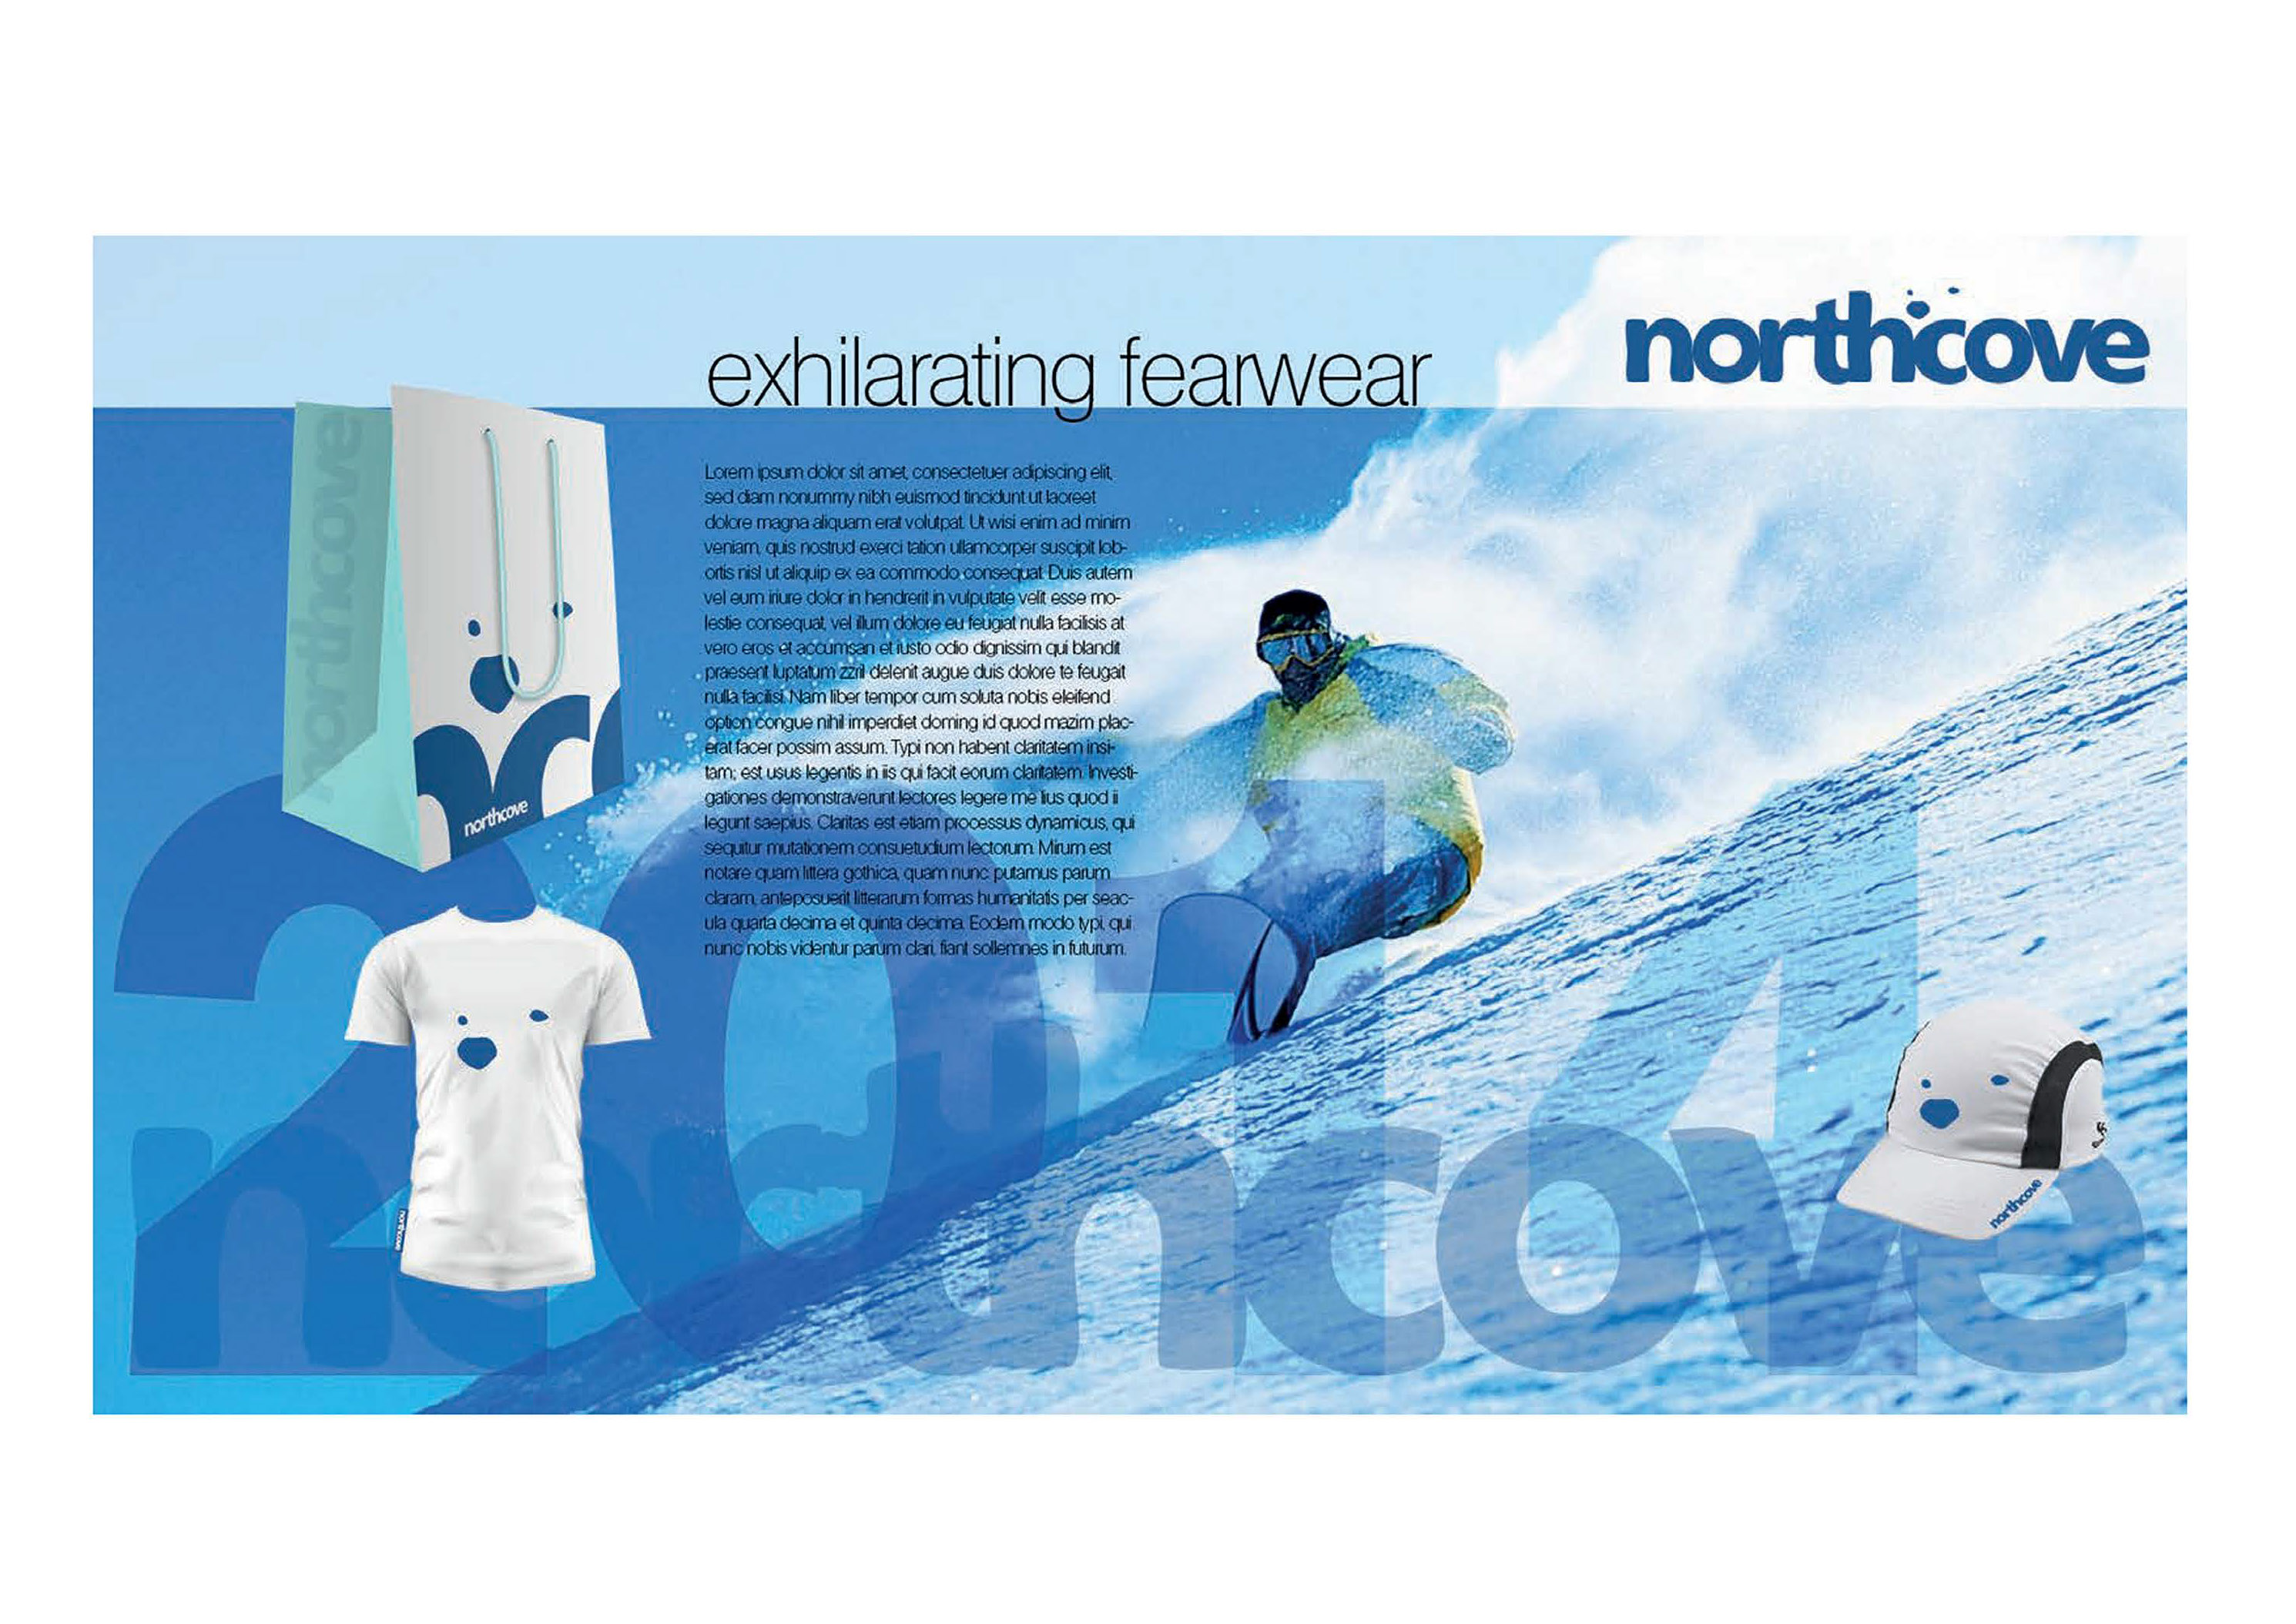 Northcove Website Concept